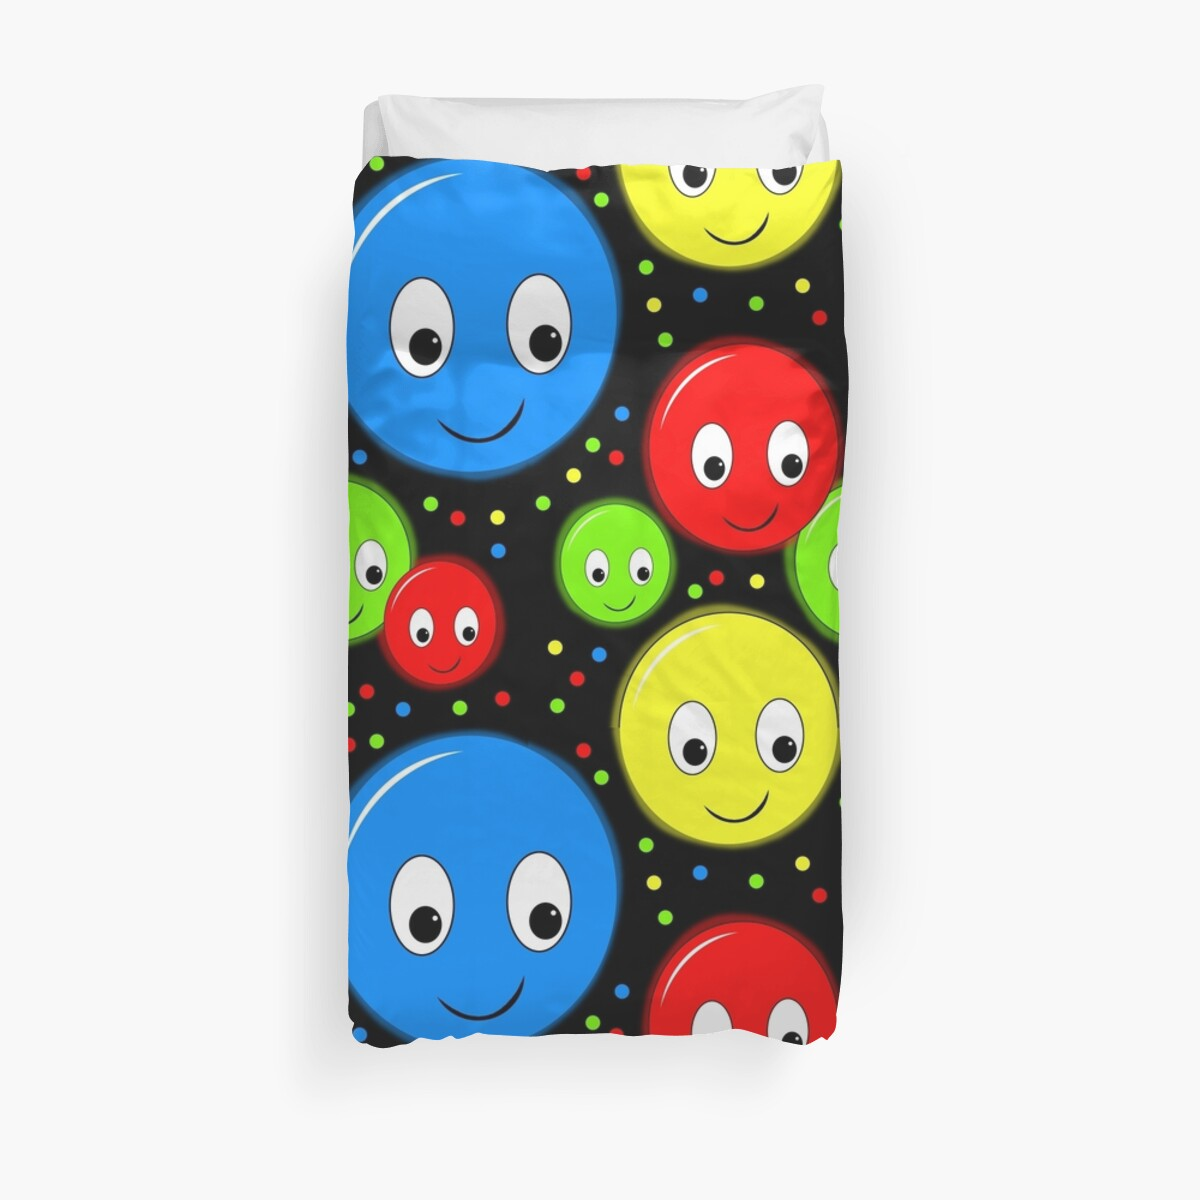 Smiley  faces  pattern by ValentinaHramov